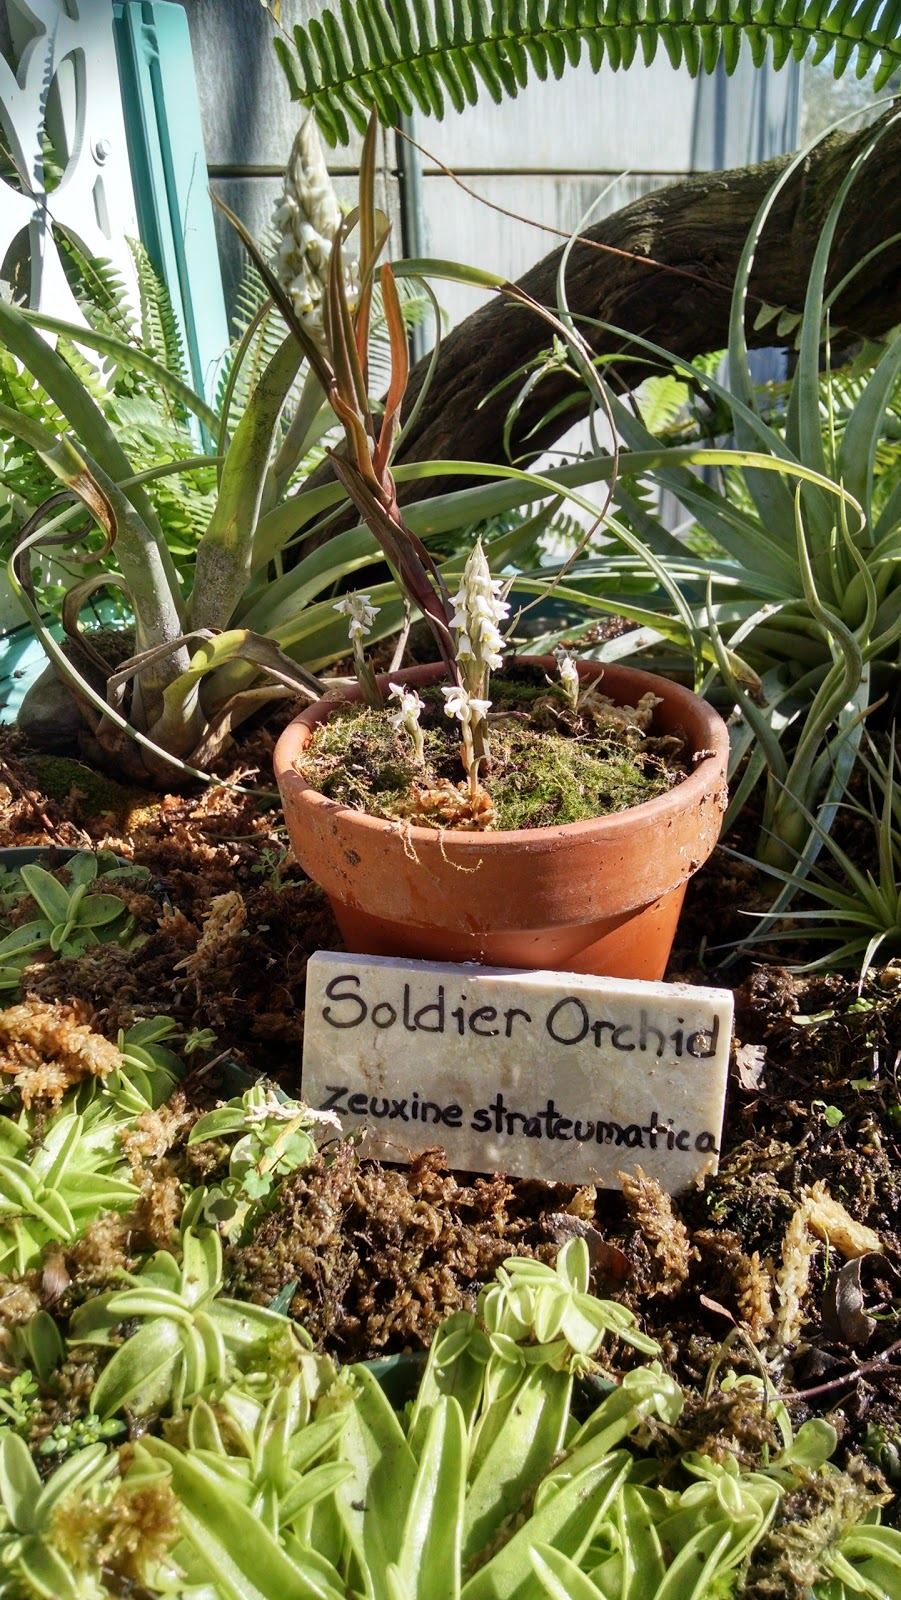 The Soldier Orchid